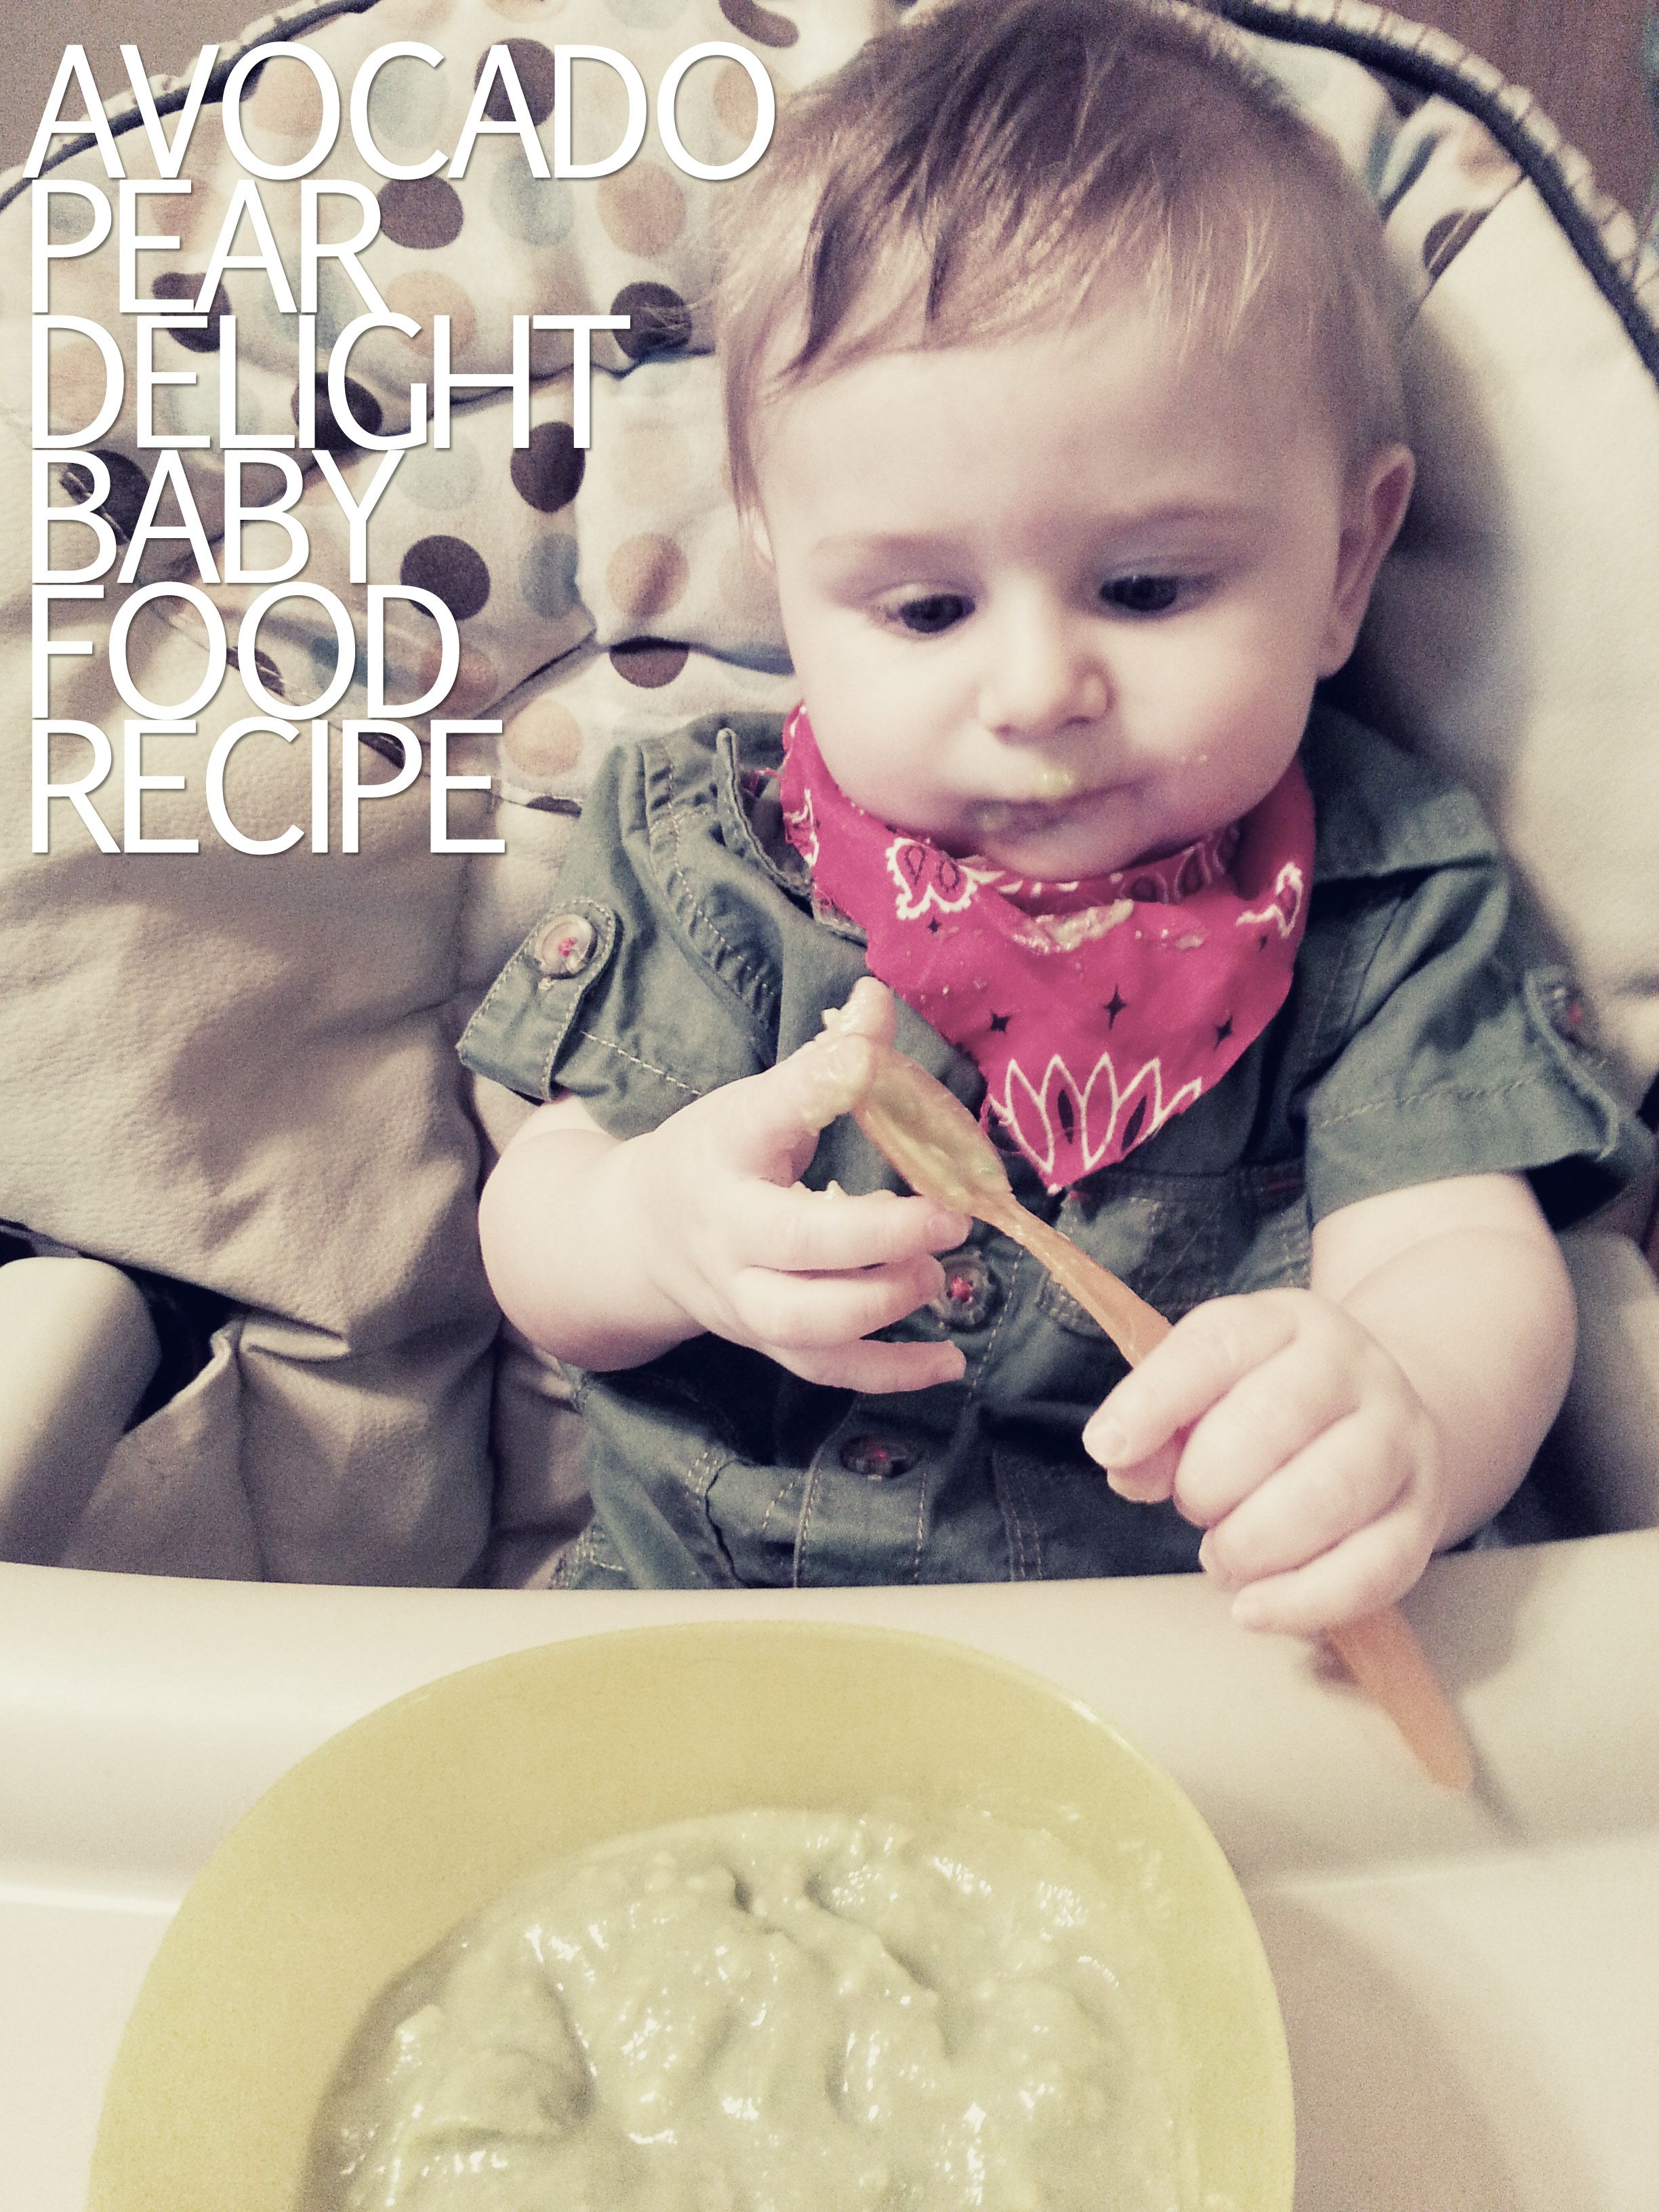 My friend said: Home made baby food recipe. Super easy ...